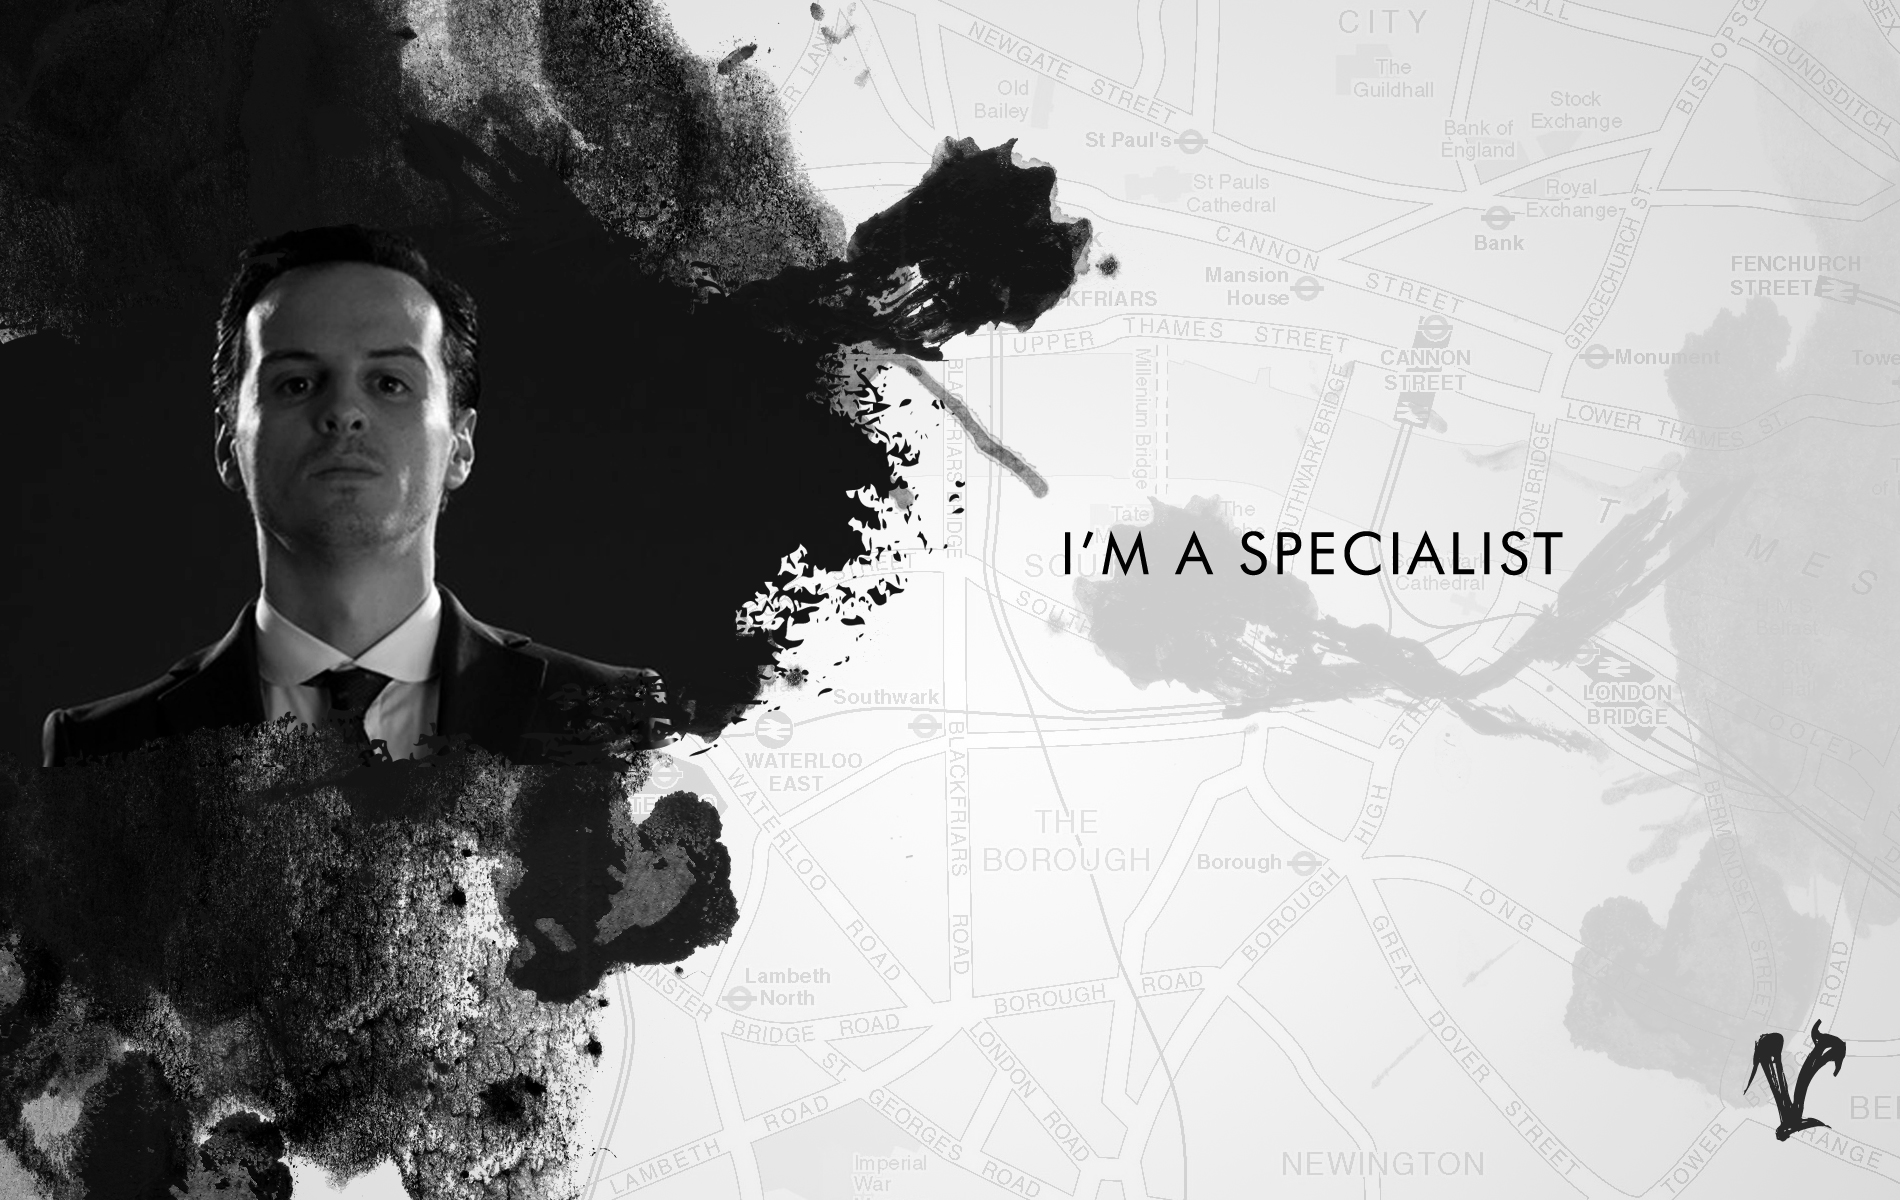 jim moriarty images hd - photo #28